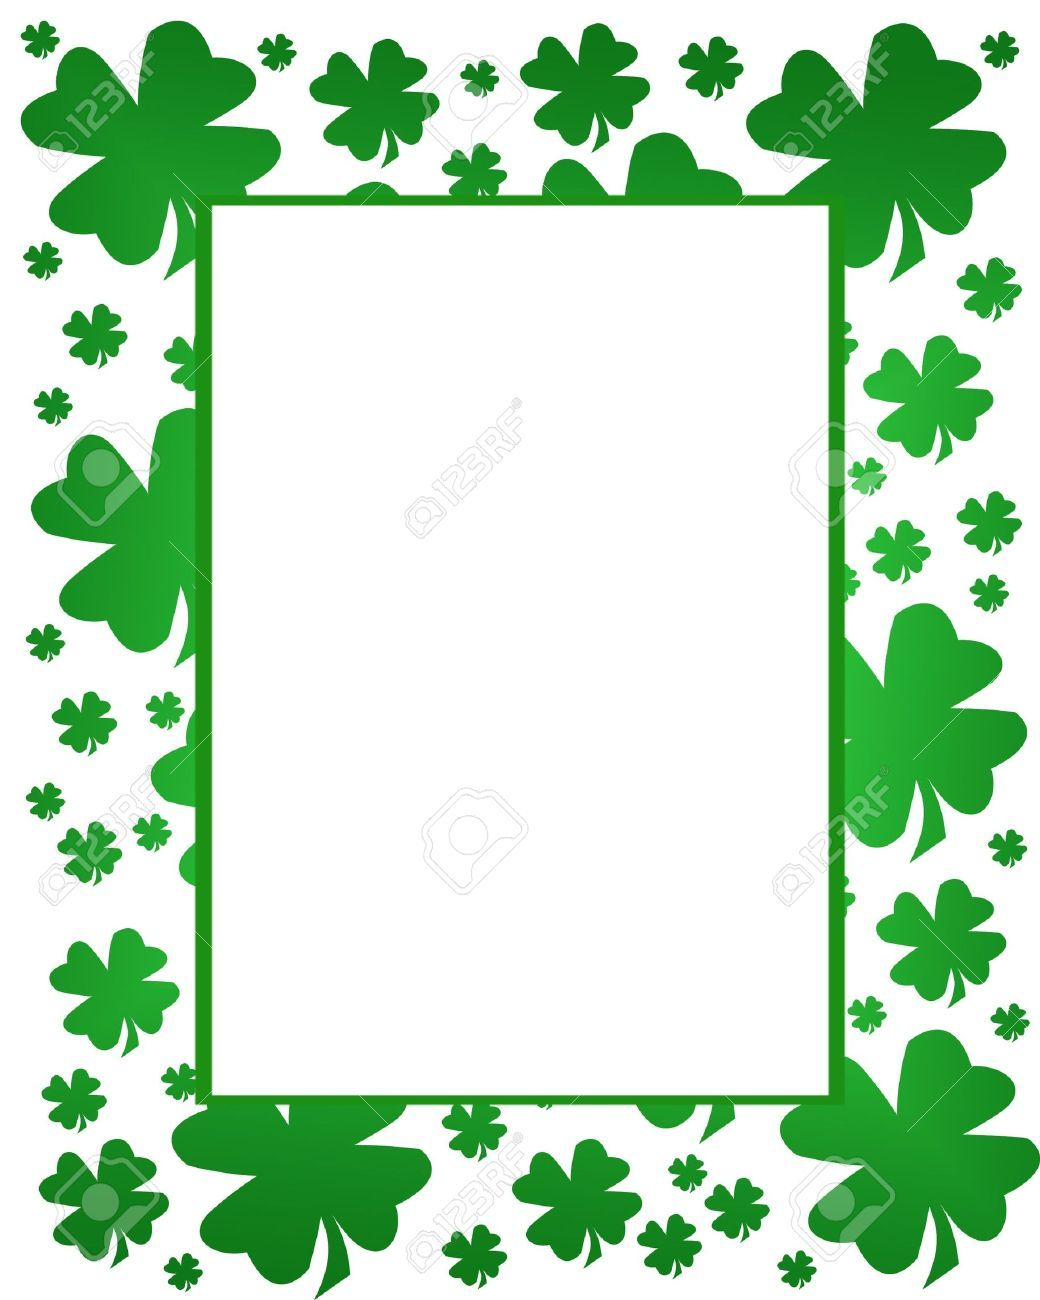 St. Patrick\'s Day graphics, backgrounds, vectors, pngs | Graphic ...